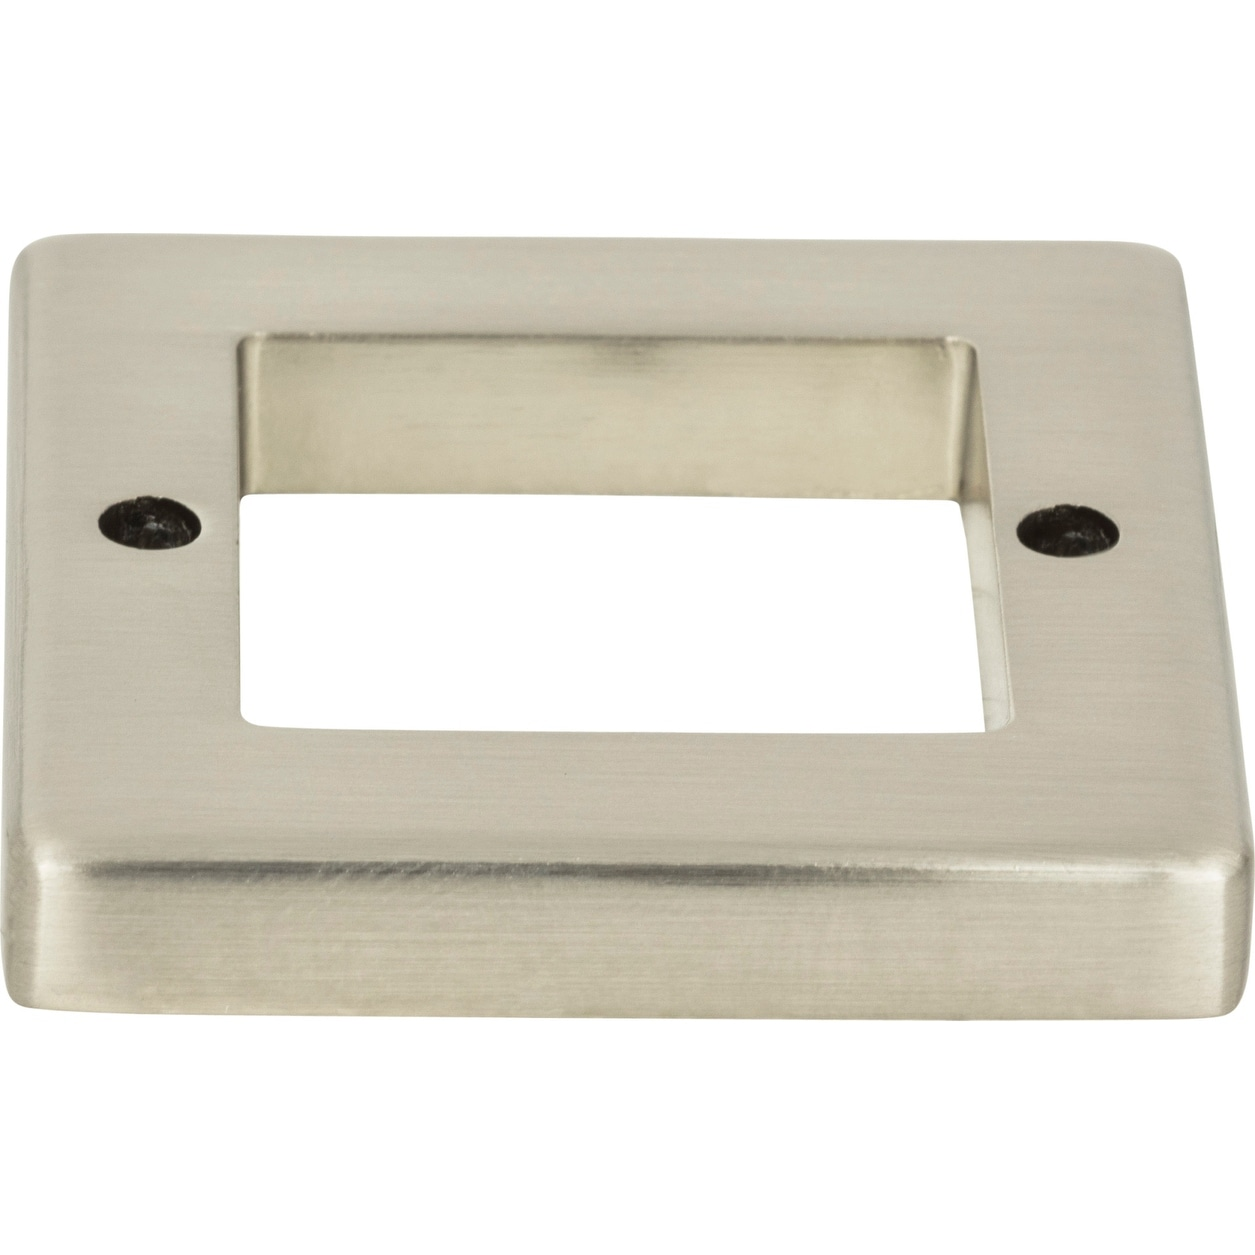 Atlas Homewares 392  Tableau 1-7/8 Long Cabinet Pull Backplate (Polished Nickel)